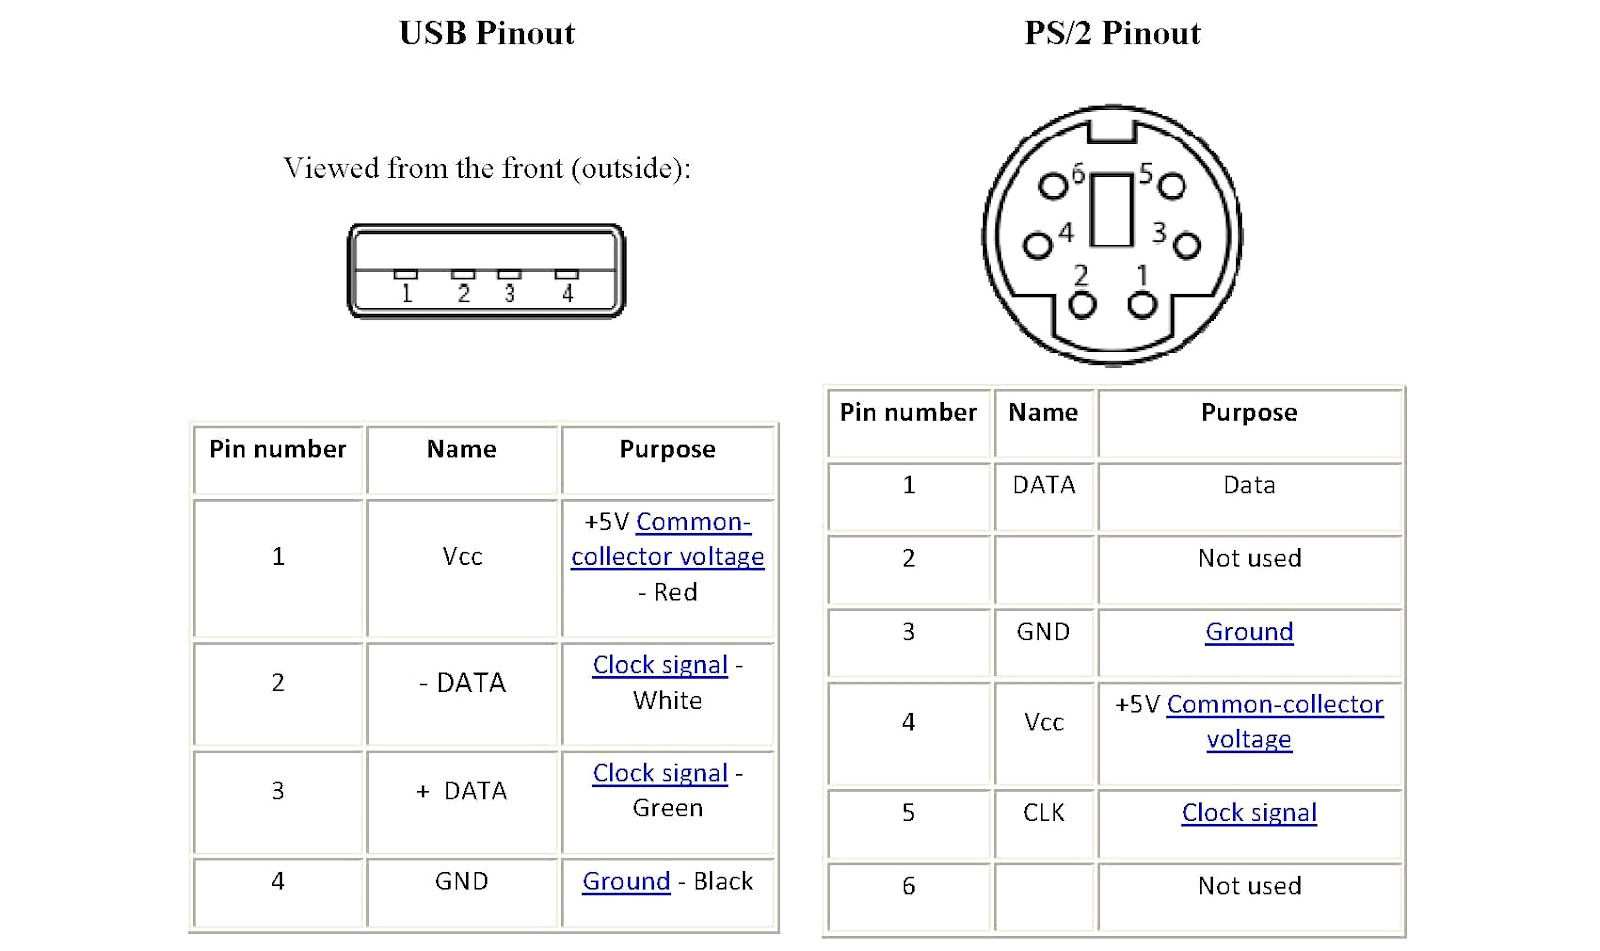 Ps2 Plug Wiring Diagram Keyboard Pinout Wire Color Xwgjsc Com - Usb Pinout Wiring Diagram